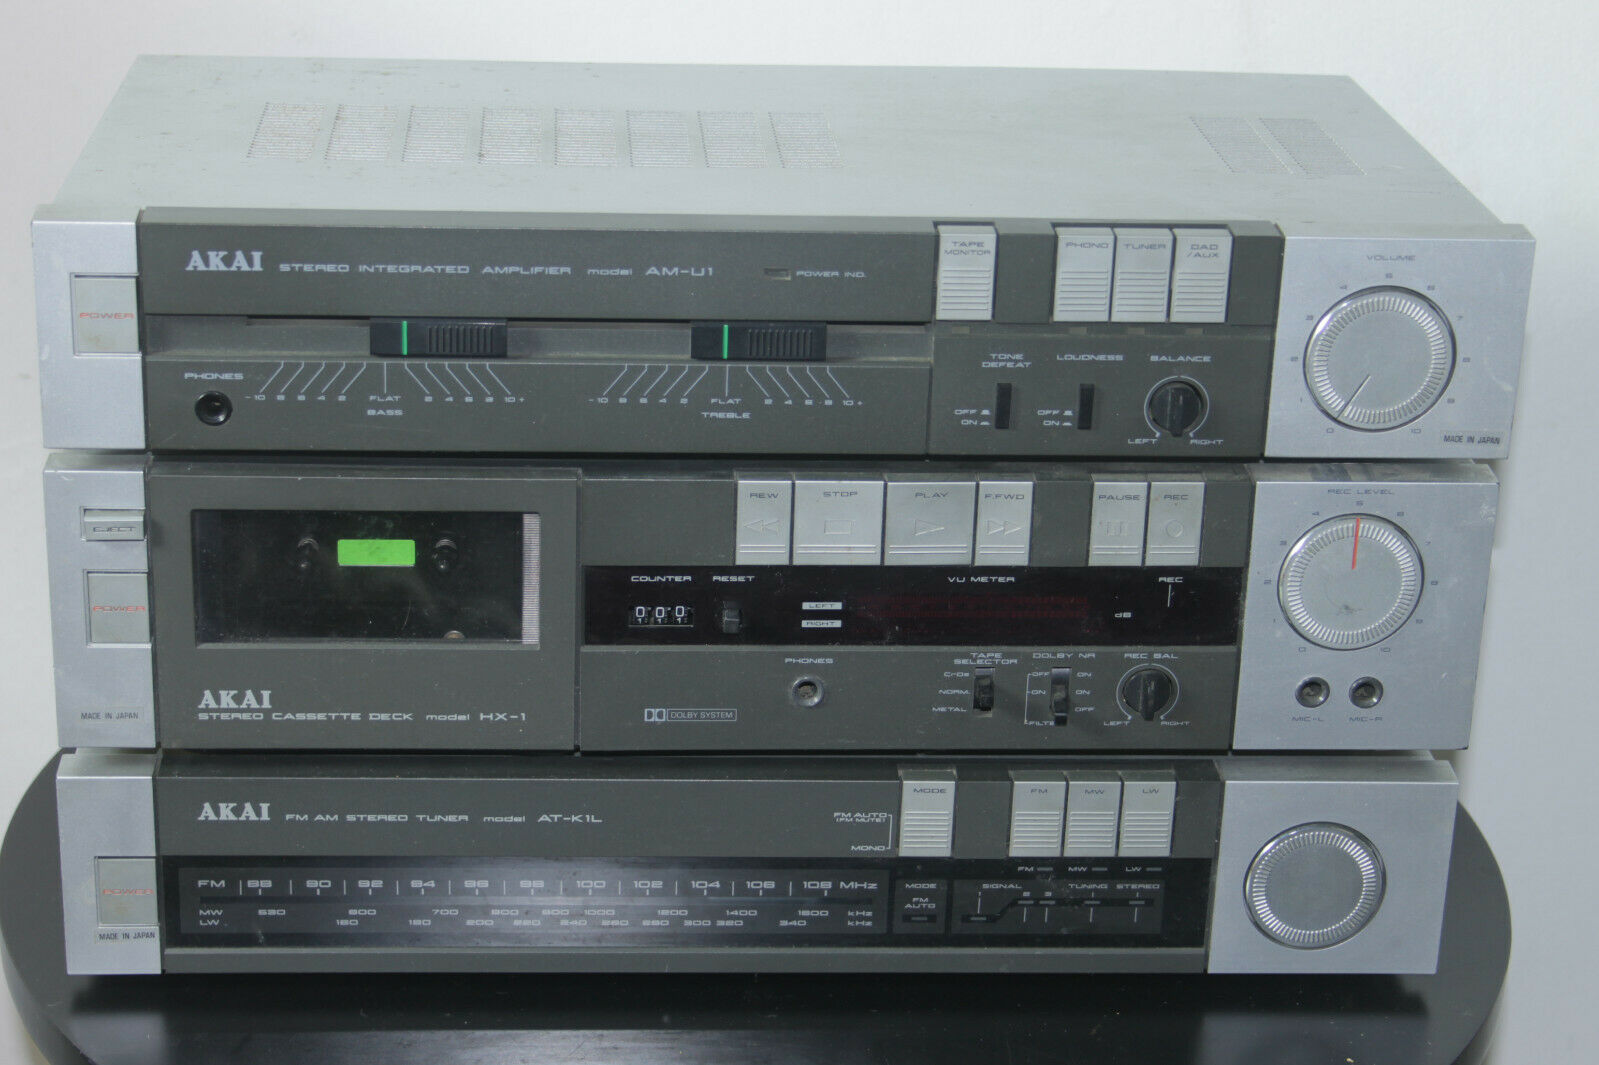 Rare Vintage Akai Stack System AM-U1, HX-1, AT-K1L and Aerial Tested and Working